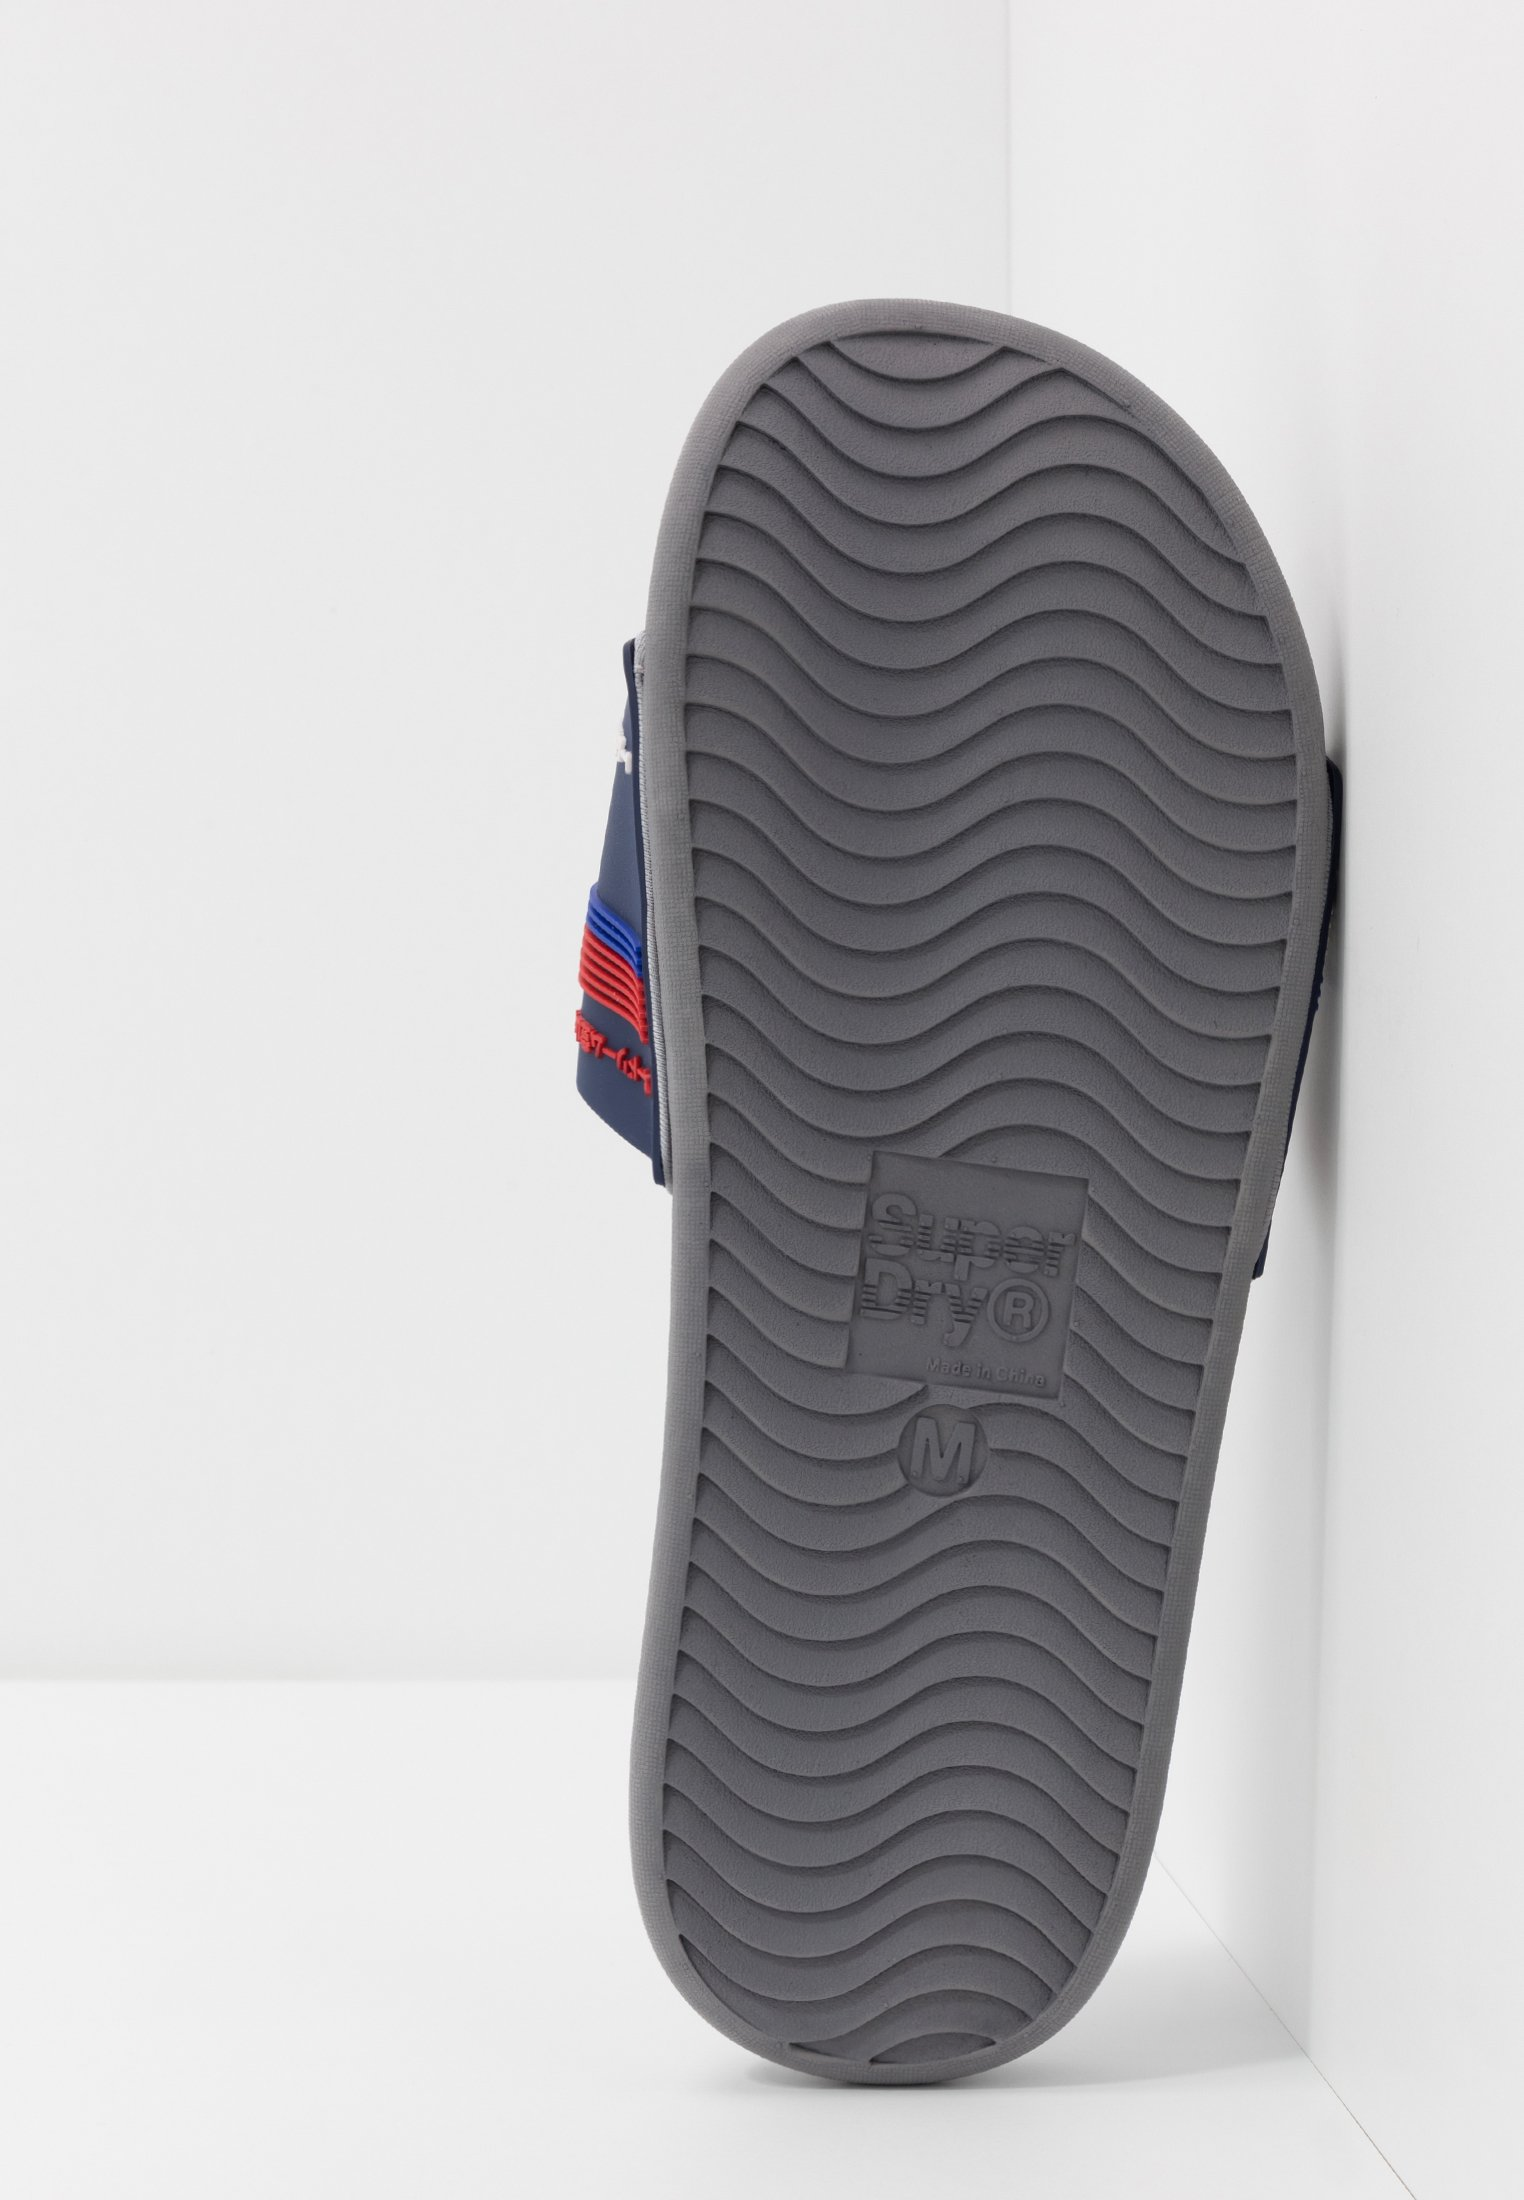 Superdry CREWE RACER SLIDE - Klapki - blue